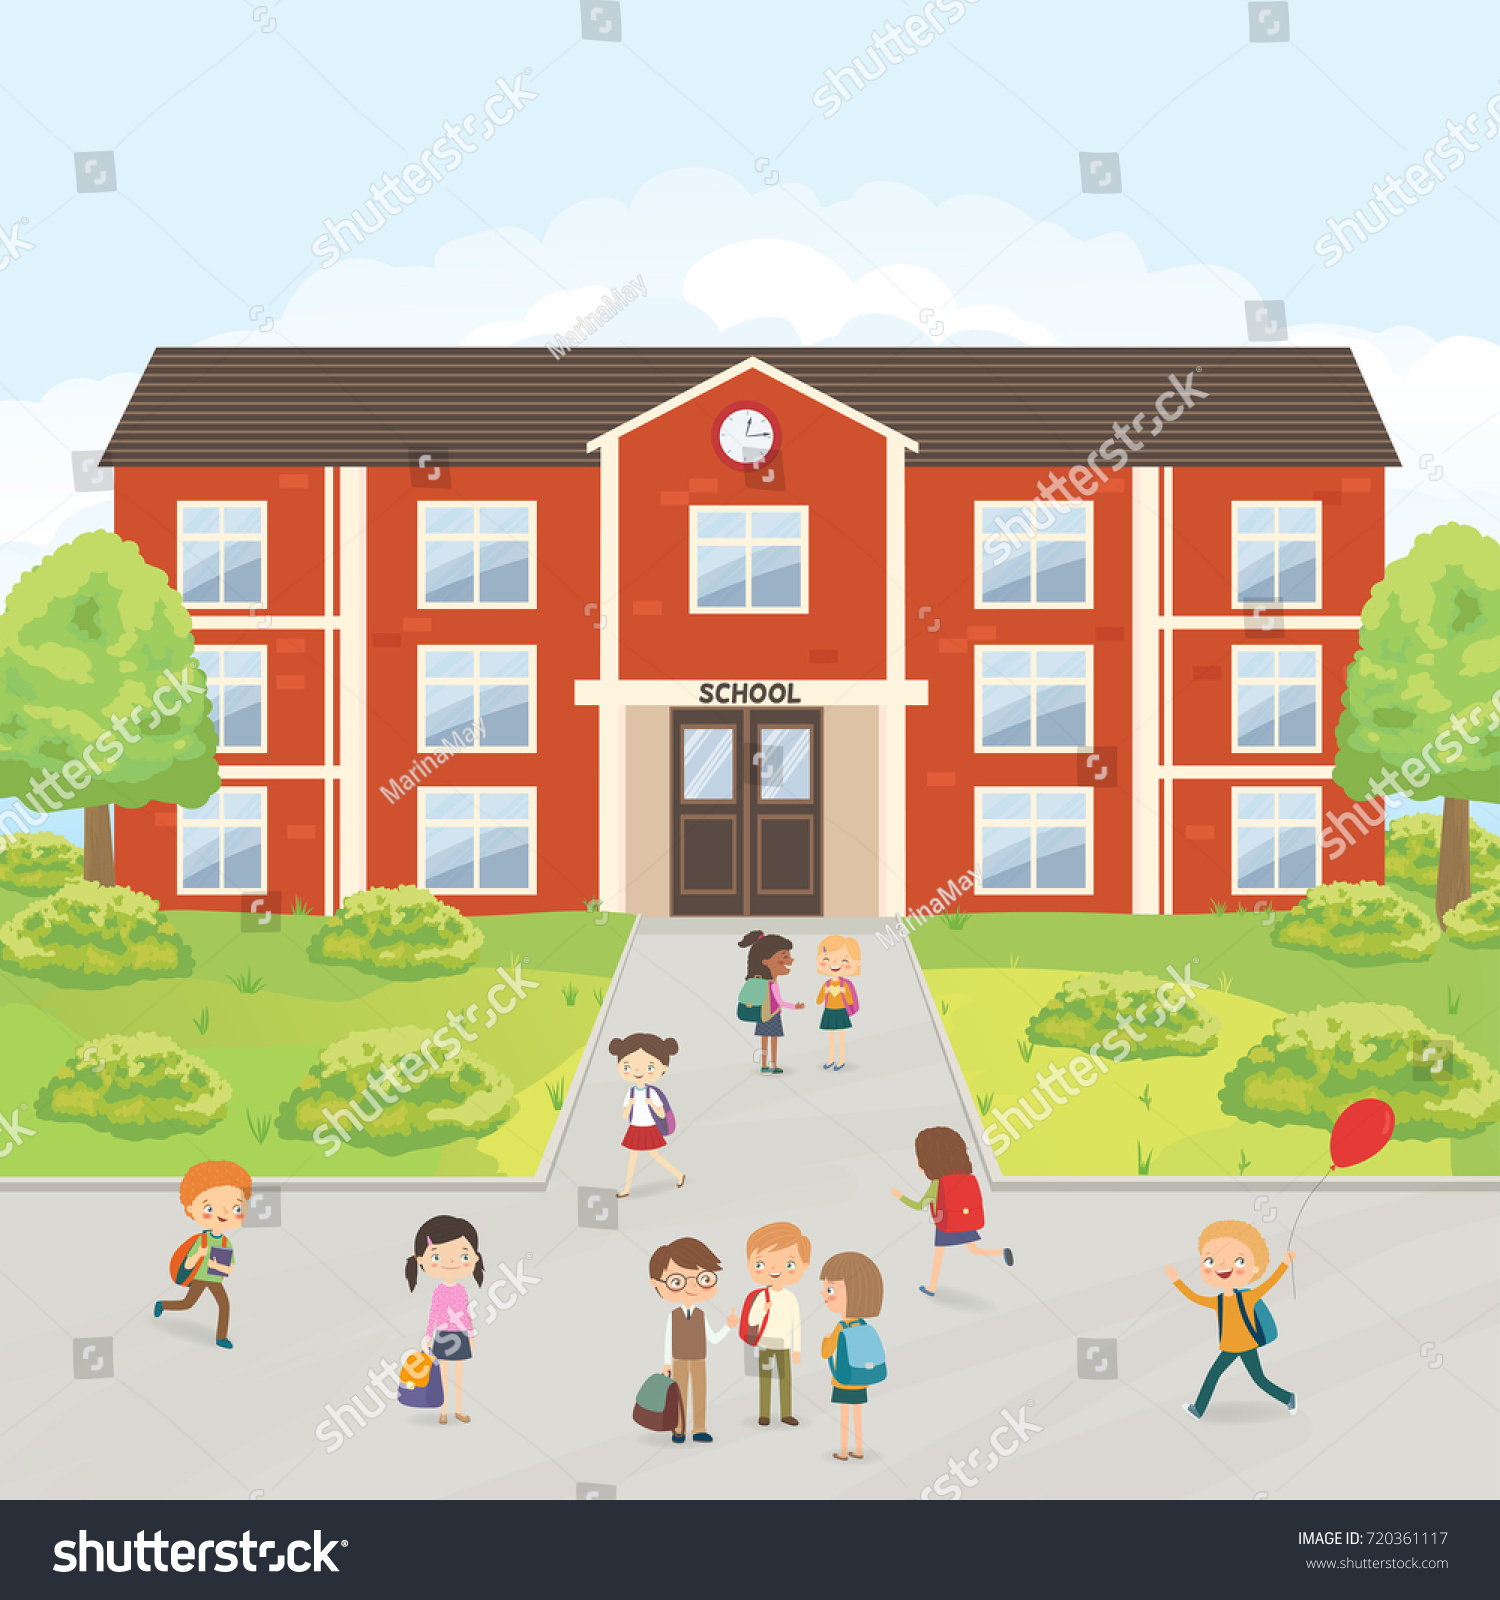 Group of elementary school kids in the school yard. Primary education.  Cartoon vector illustration